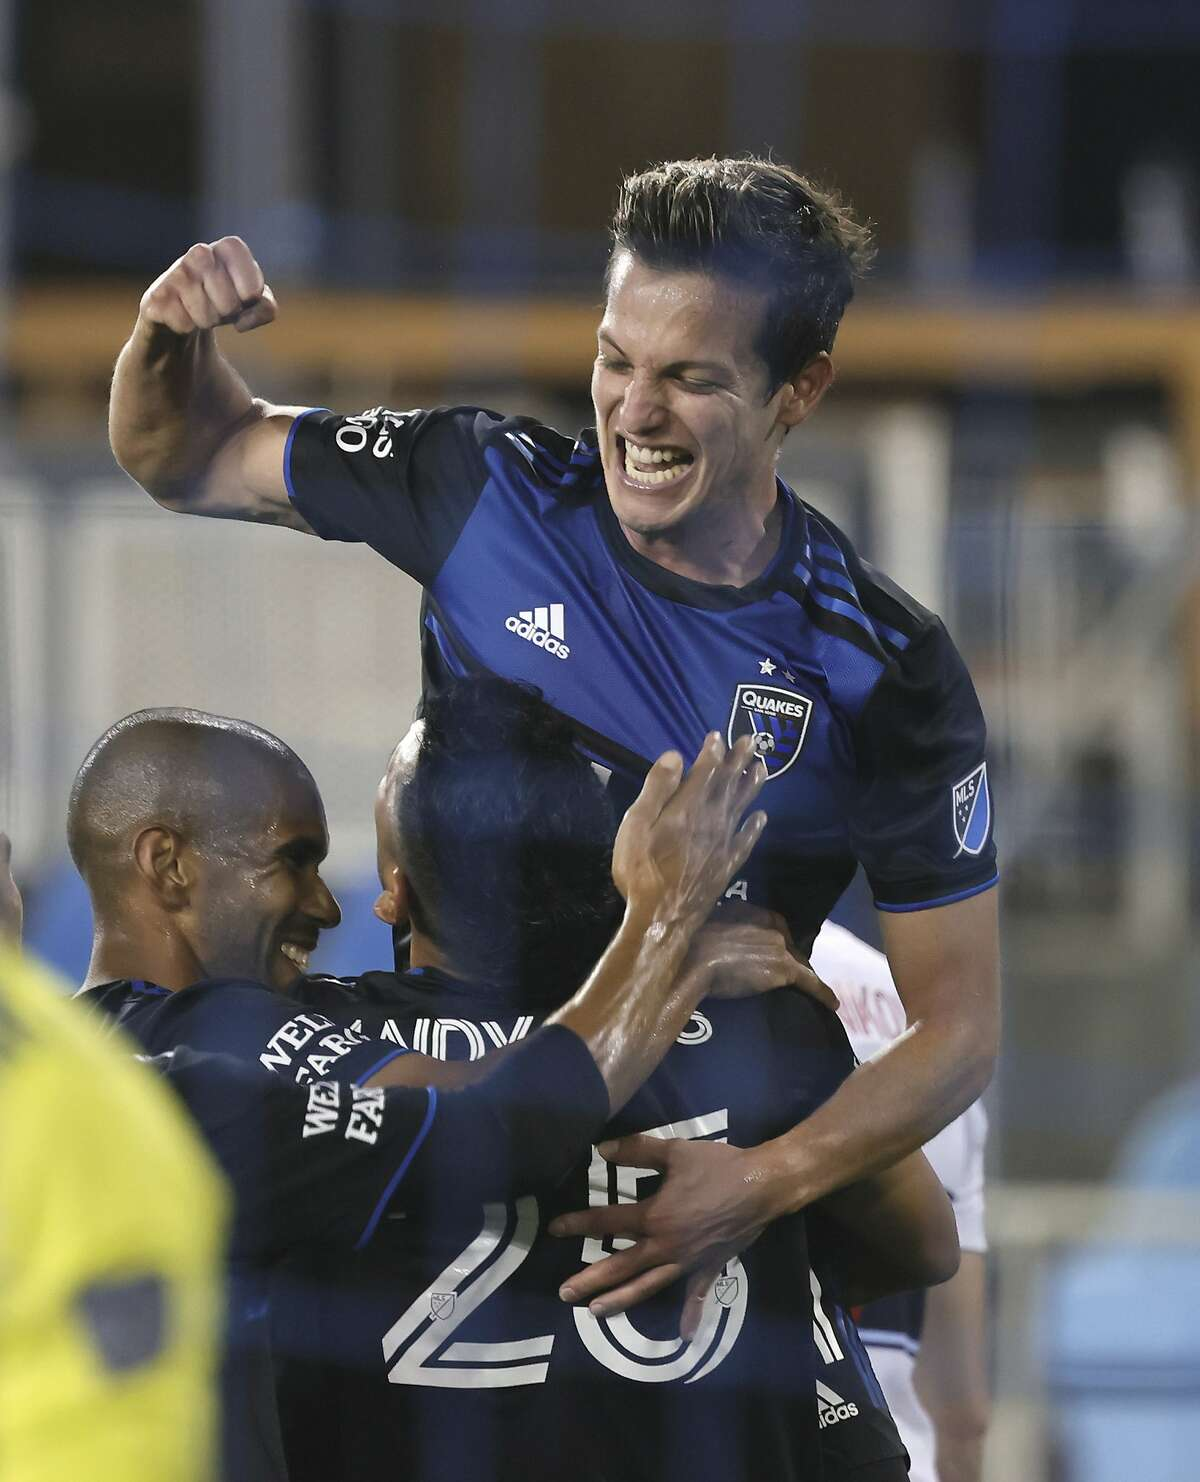 San Jose Earthquakes midfielder Carlos Fierro (21) celebrates after forward Andy Rios, center, scored a goal against the Vancouver Whitecaps during the second half of an MLS soccer match Wednesday, Oct. 7, 2020, in San Jose, Calif. (AP Photo/Josie Lepe)